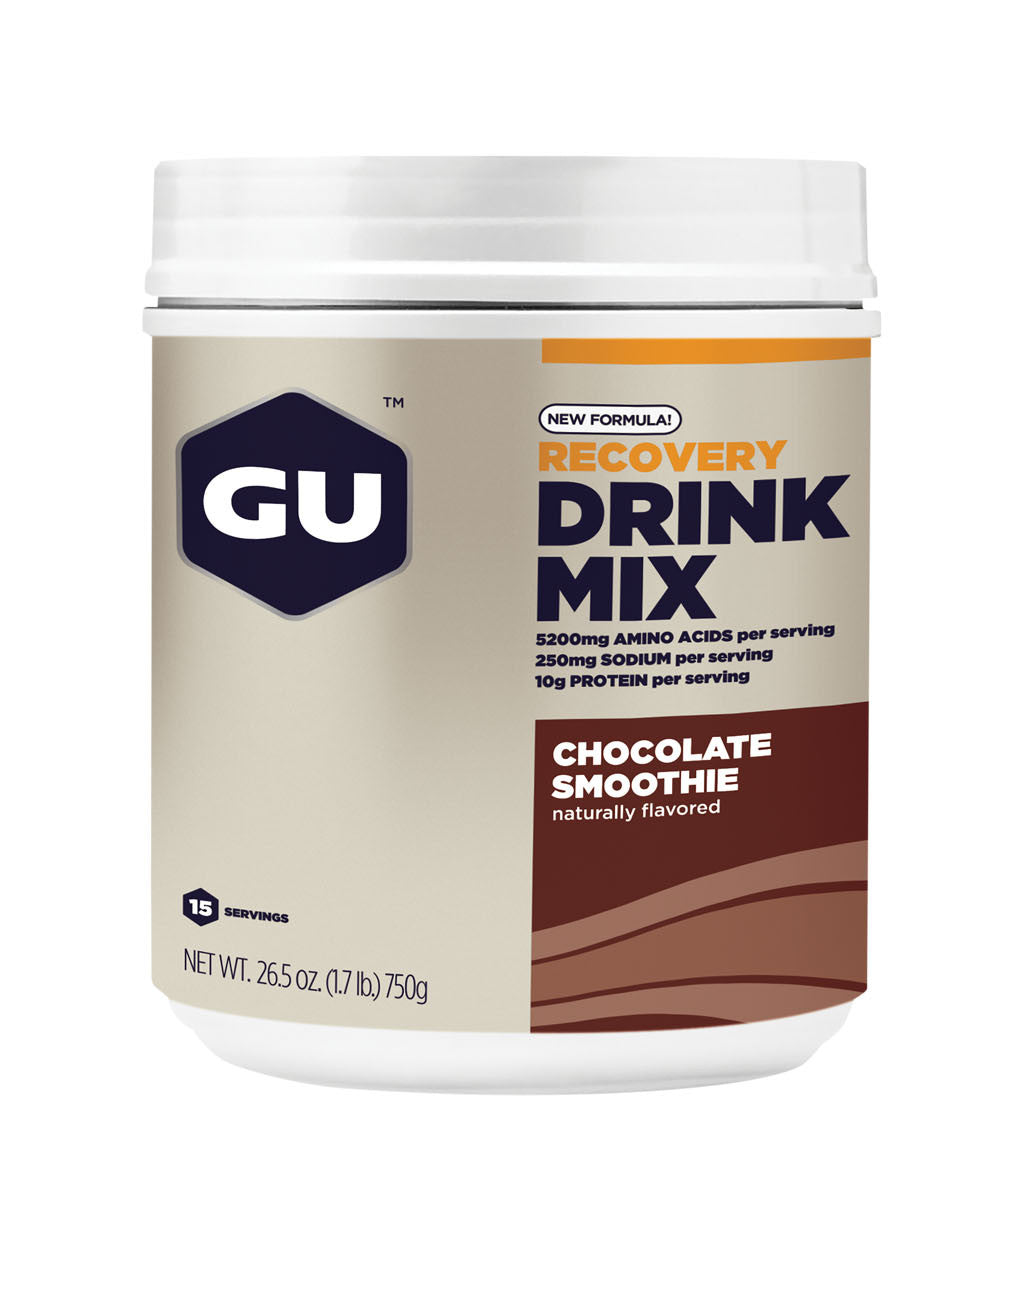 GU Recovery Drink Mix (15-serving)Chocolate Smoothie_master_image